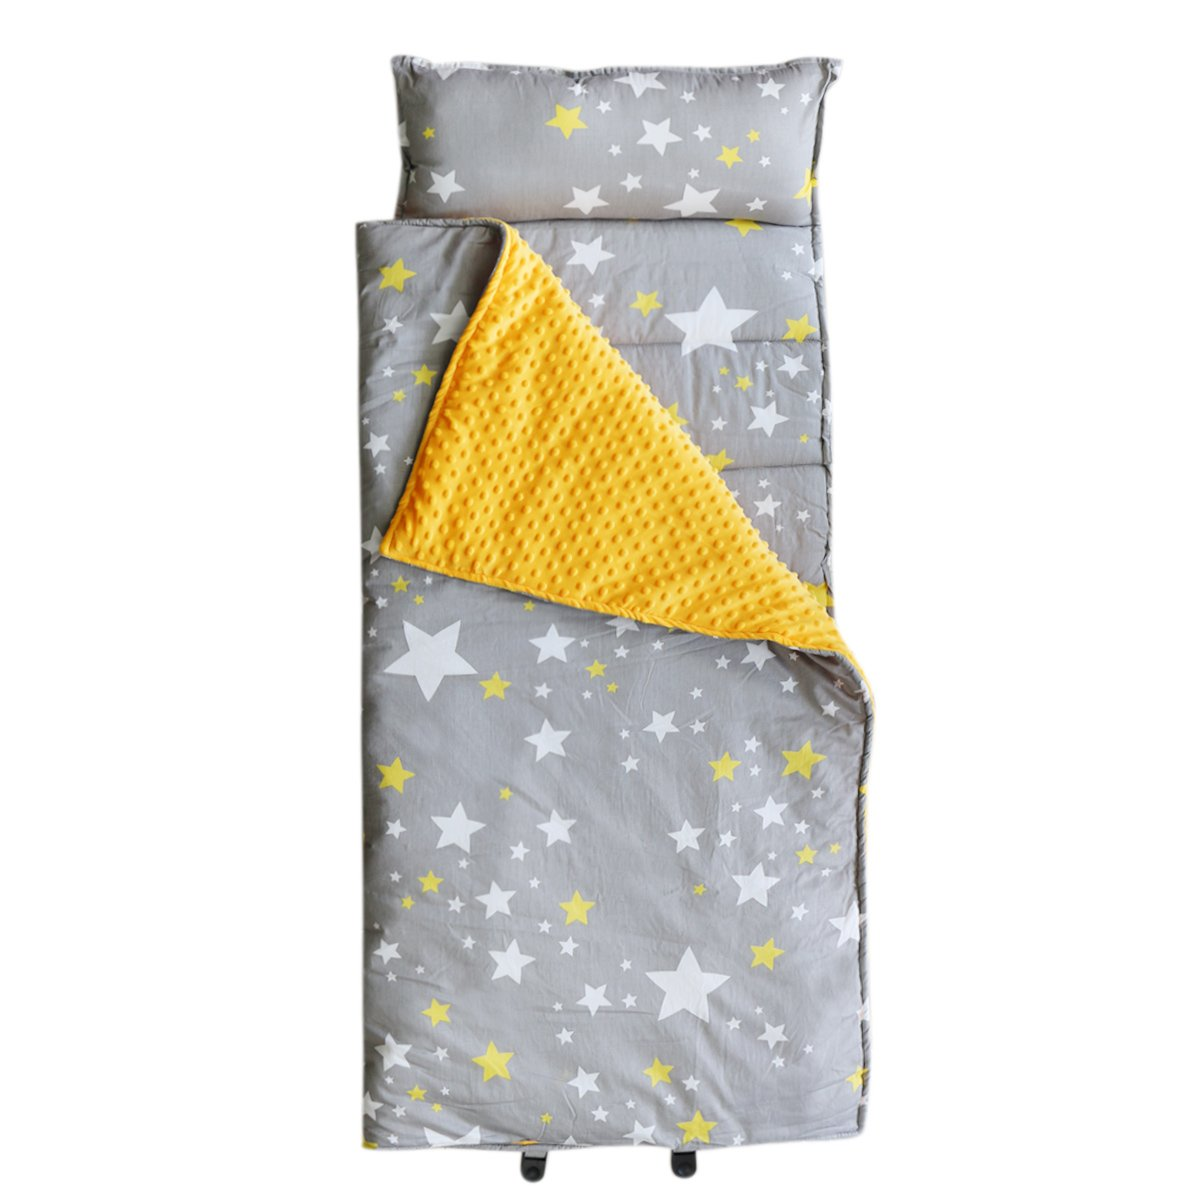 Hi Sprout Kids Toddler Lightweight and Soft Nap Mat- Minky Dot& Cotton-Stars by Hi Sprout